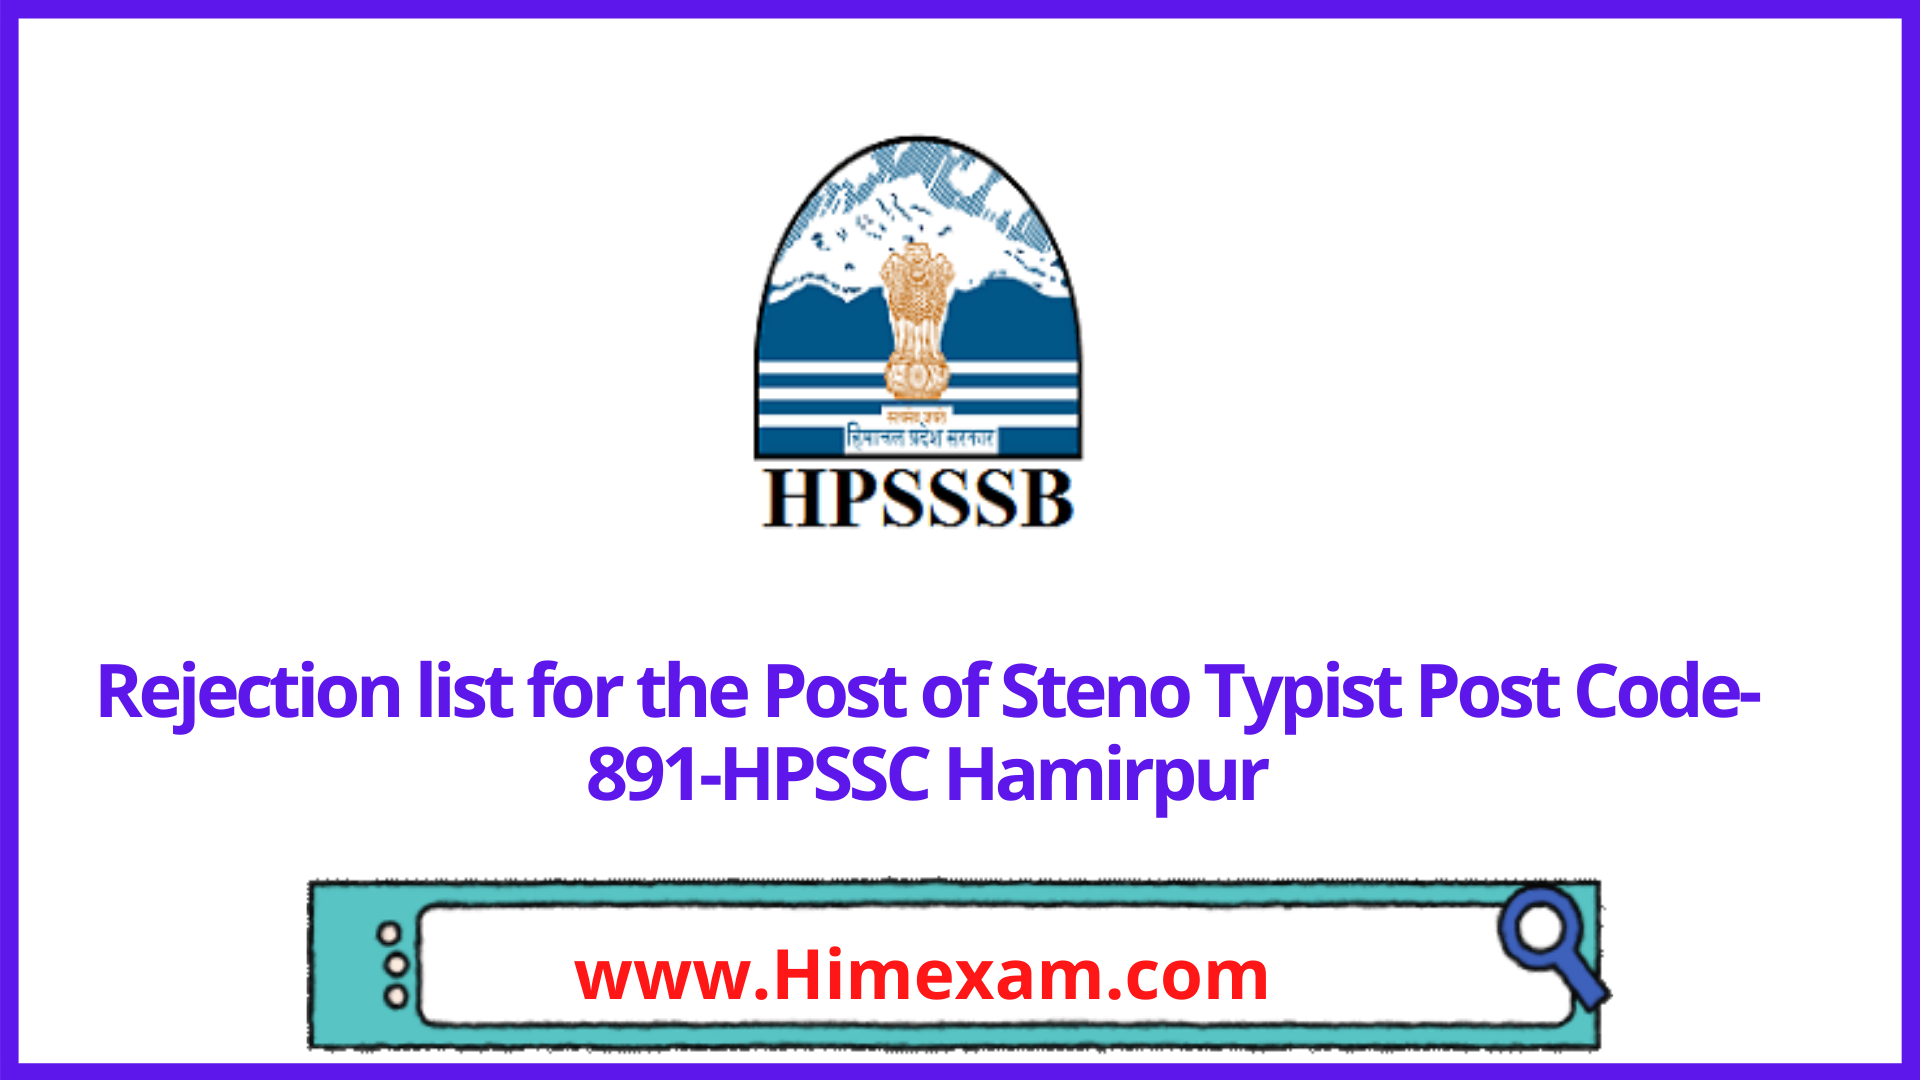 Rejection list for the Post of Steno Typist Post Code-891-HPSSC Hamirpur